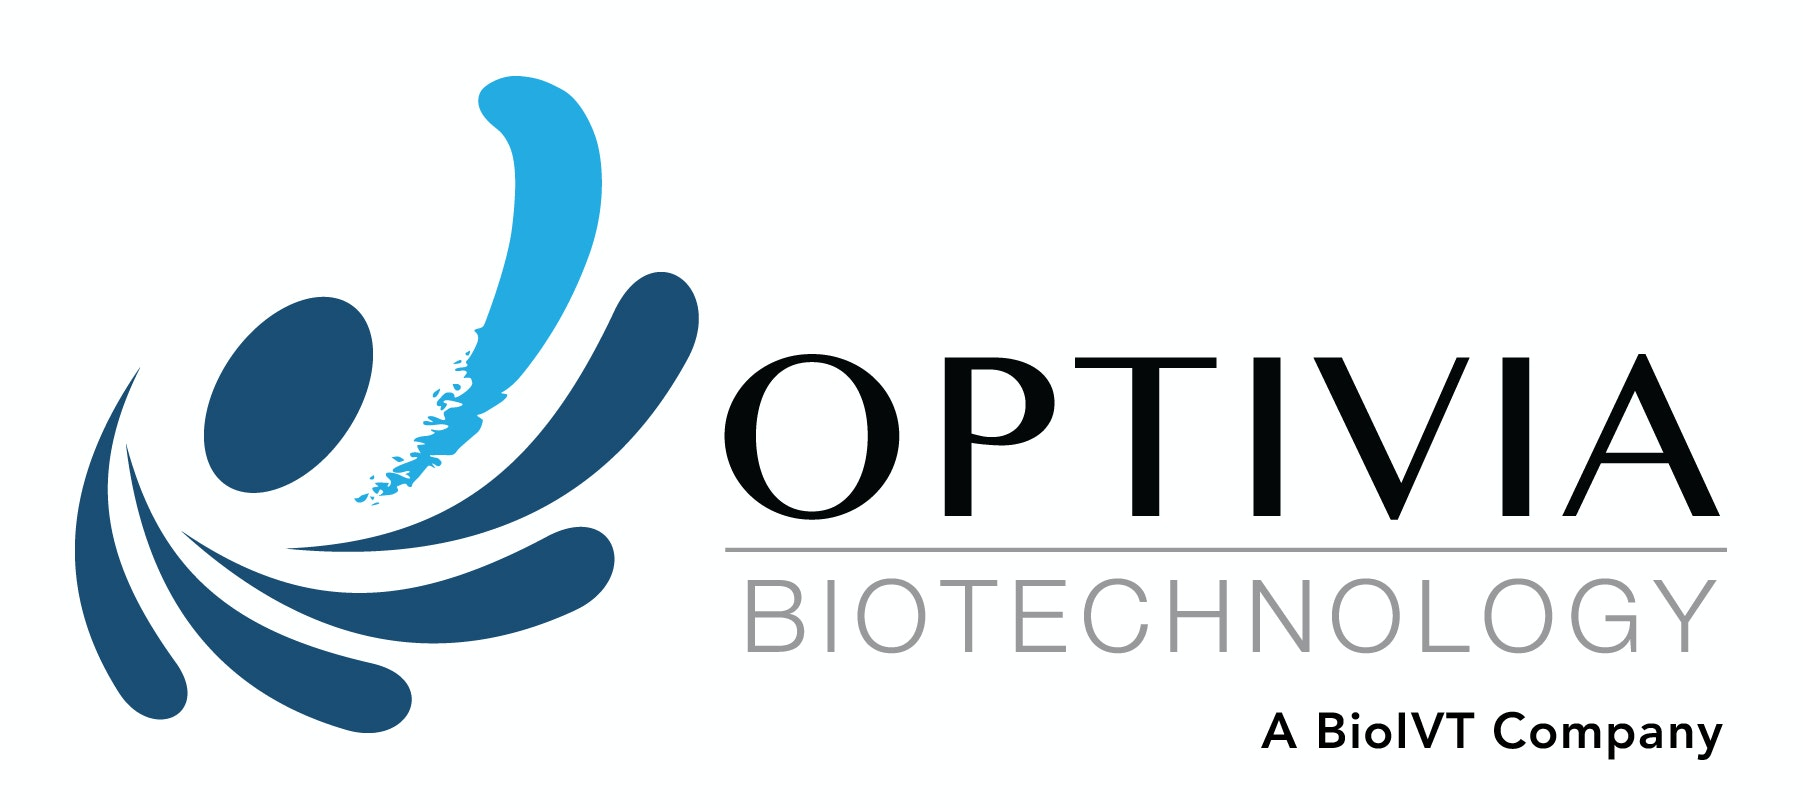 Optivia, A BioIVT Company Lab / Facility Logo